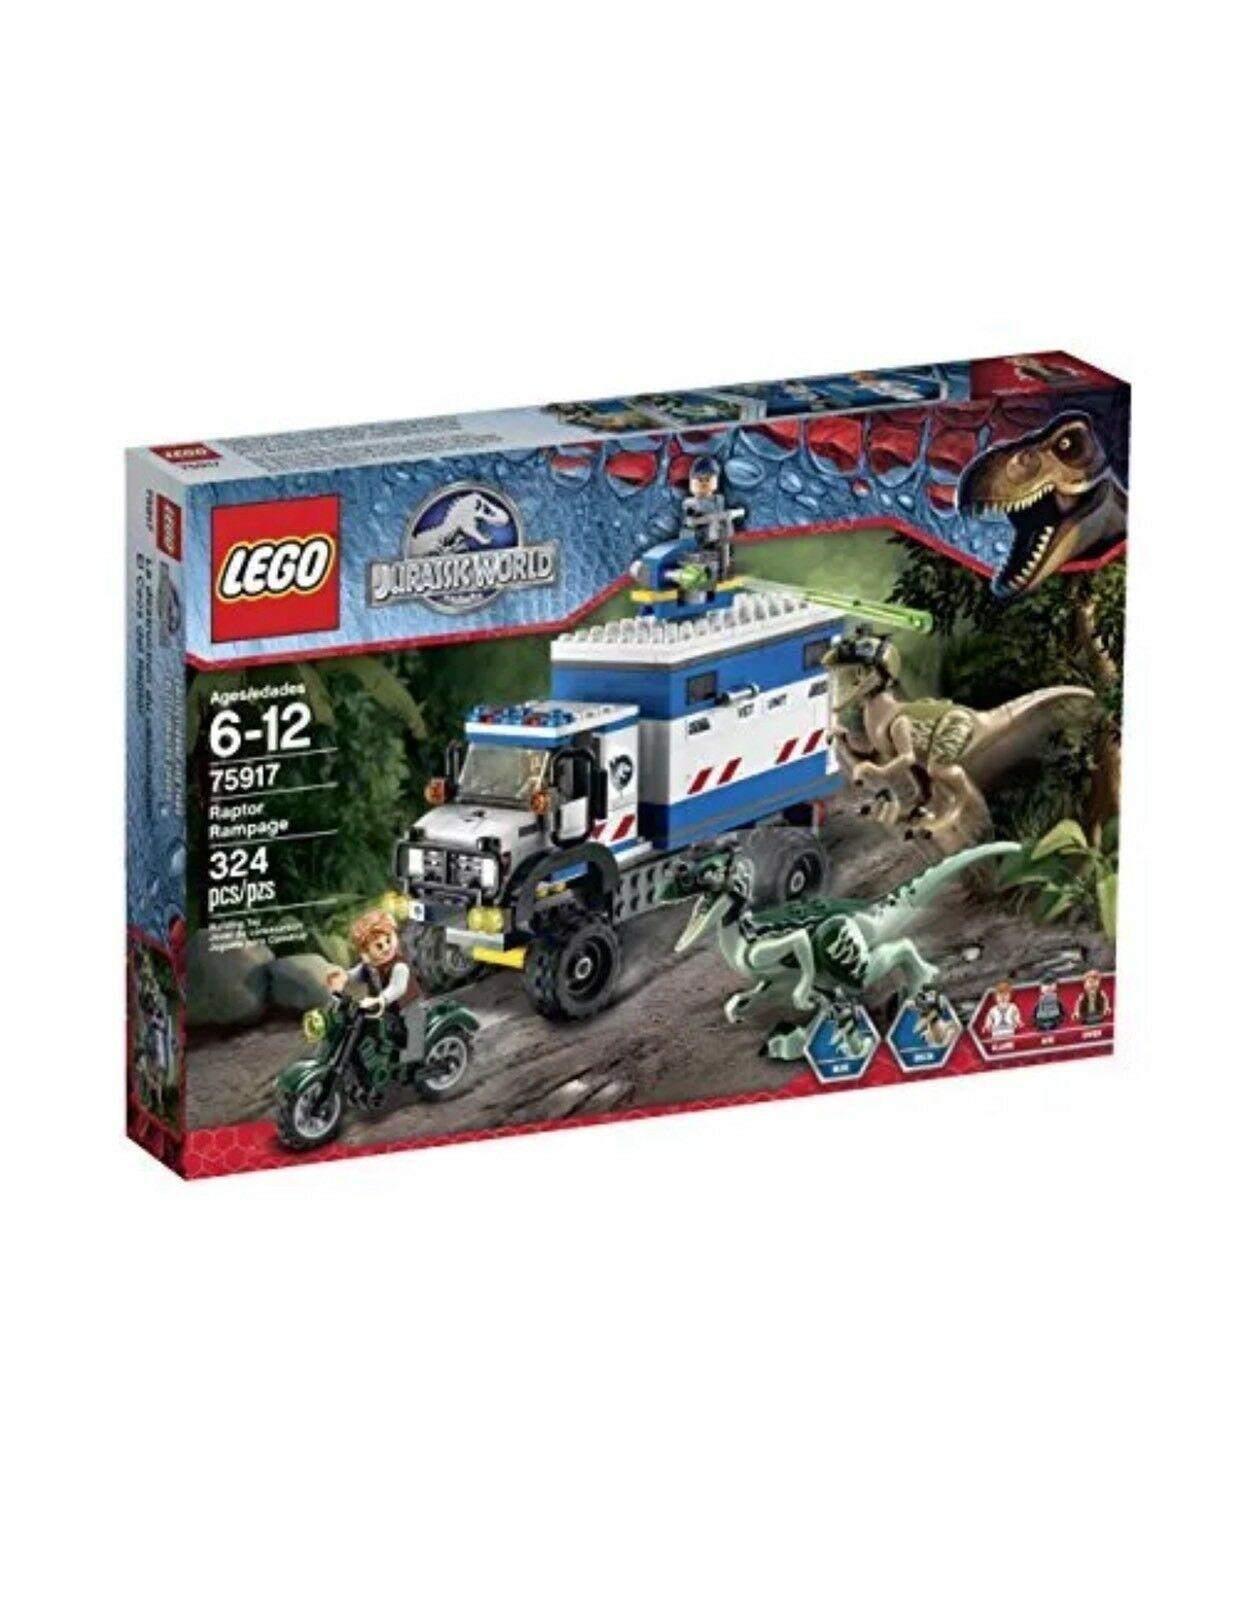 Lego Jurassic värld 7917 Raptor Rampage New Seaed Pensionerad